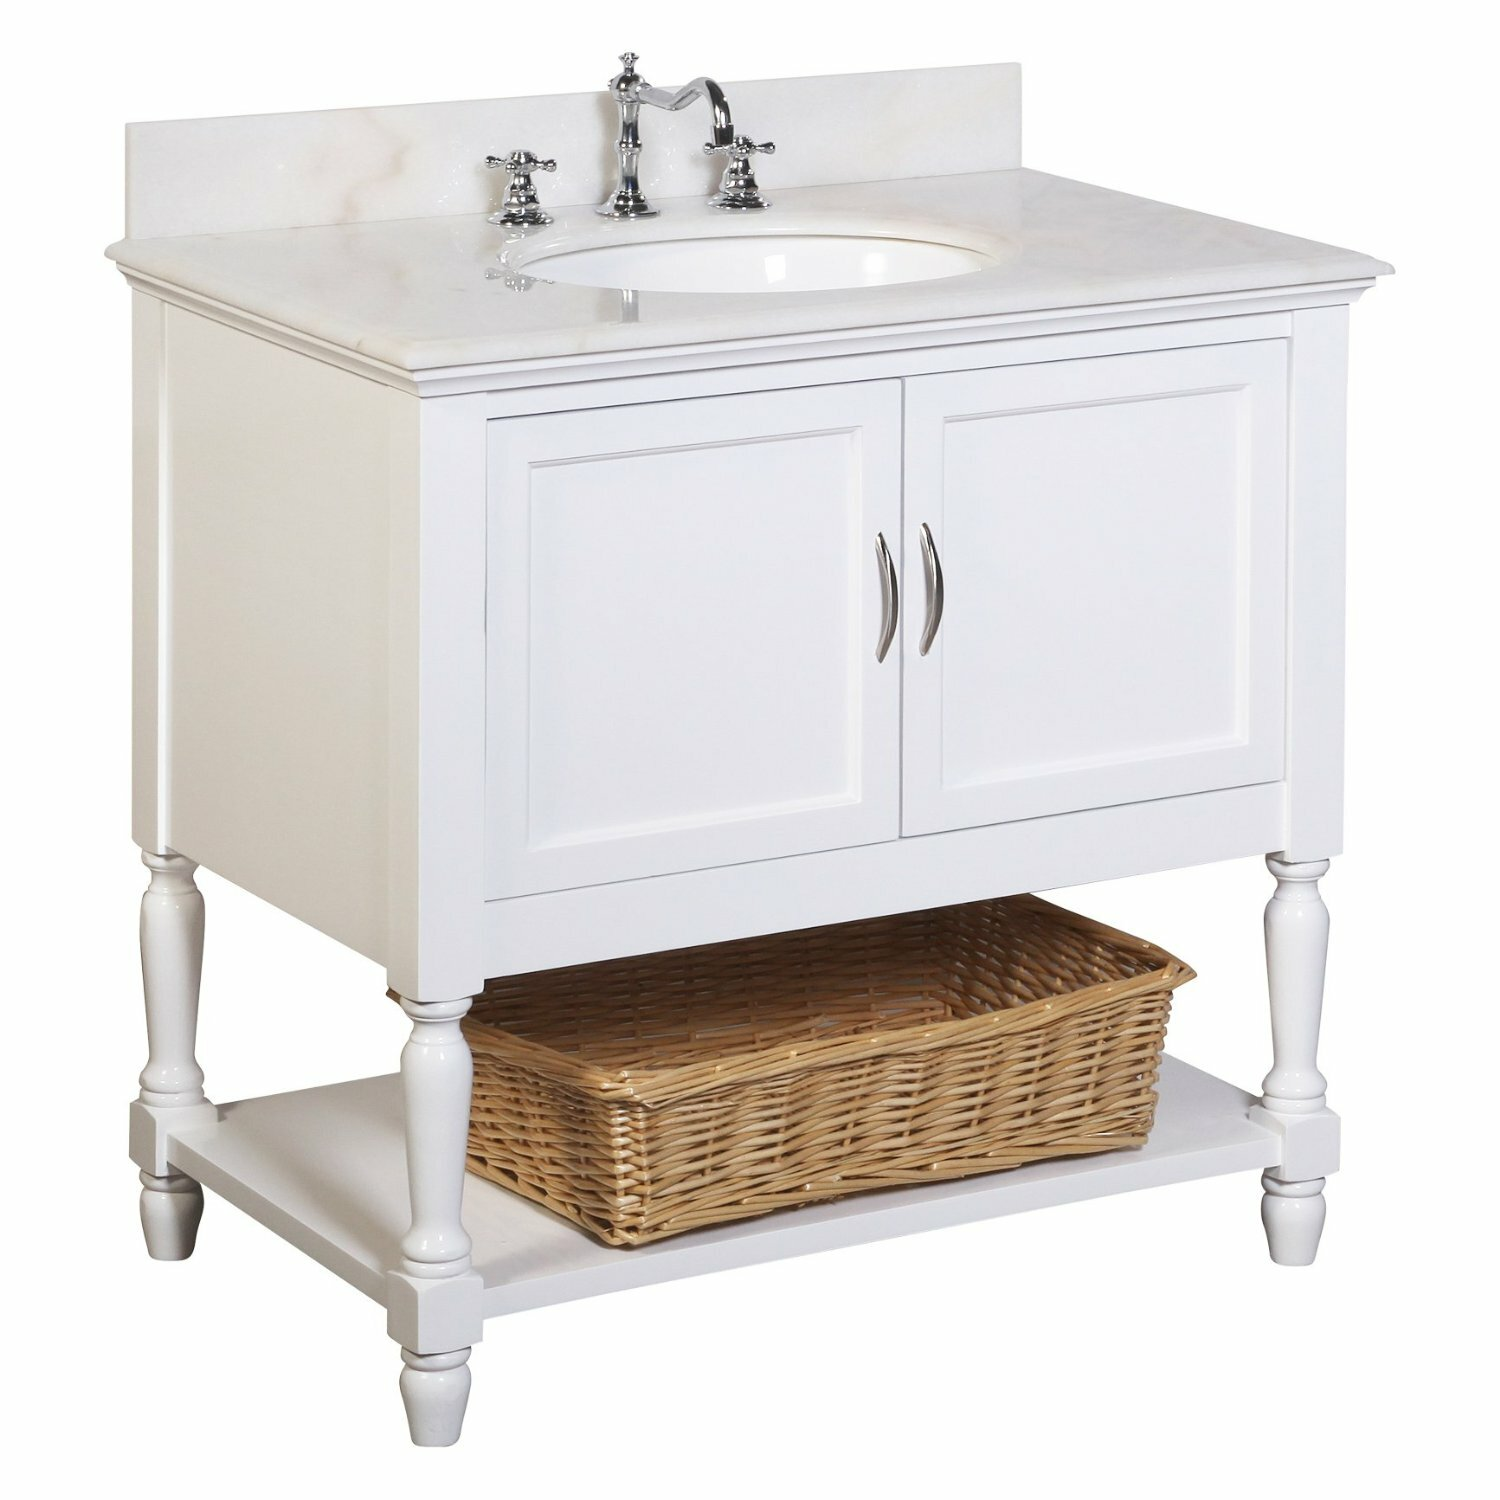 Kbc beverly 36 single bathroom vanity set reviews wayfair for Bath and vanity set